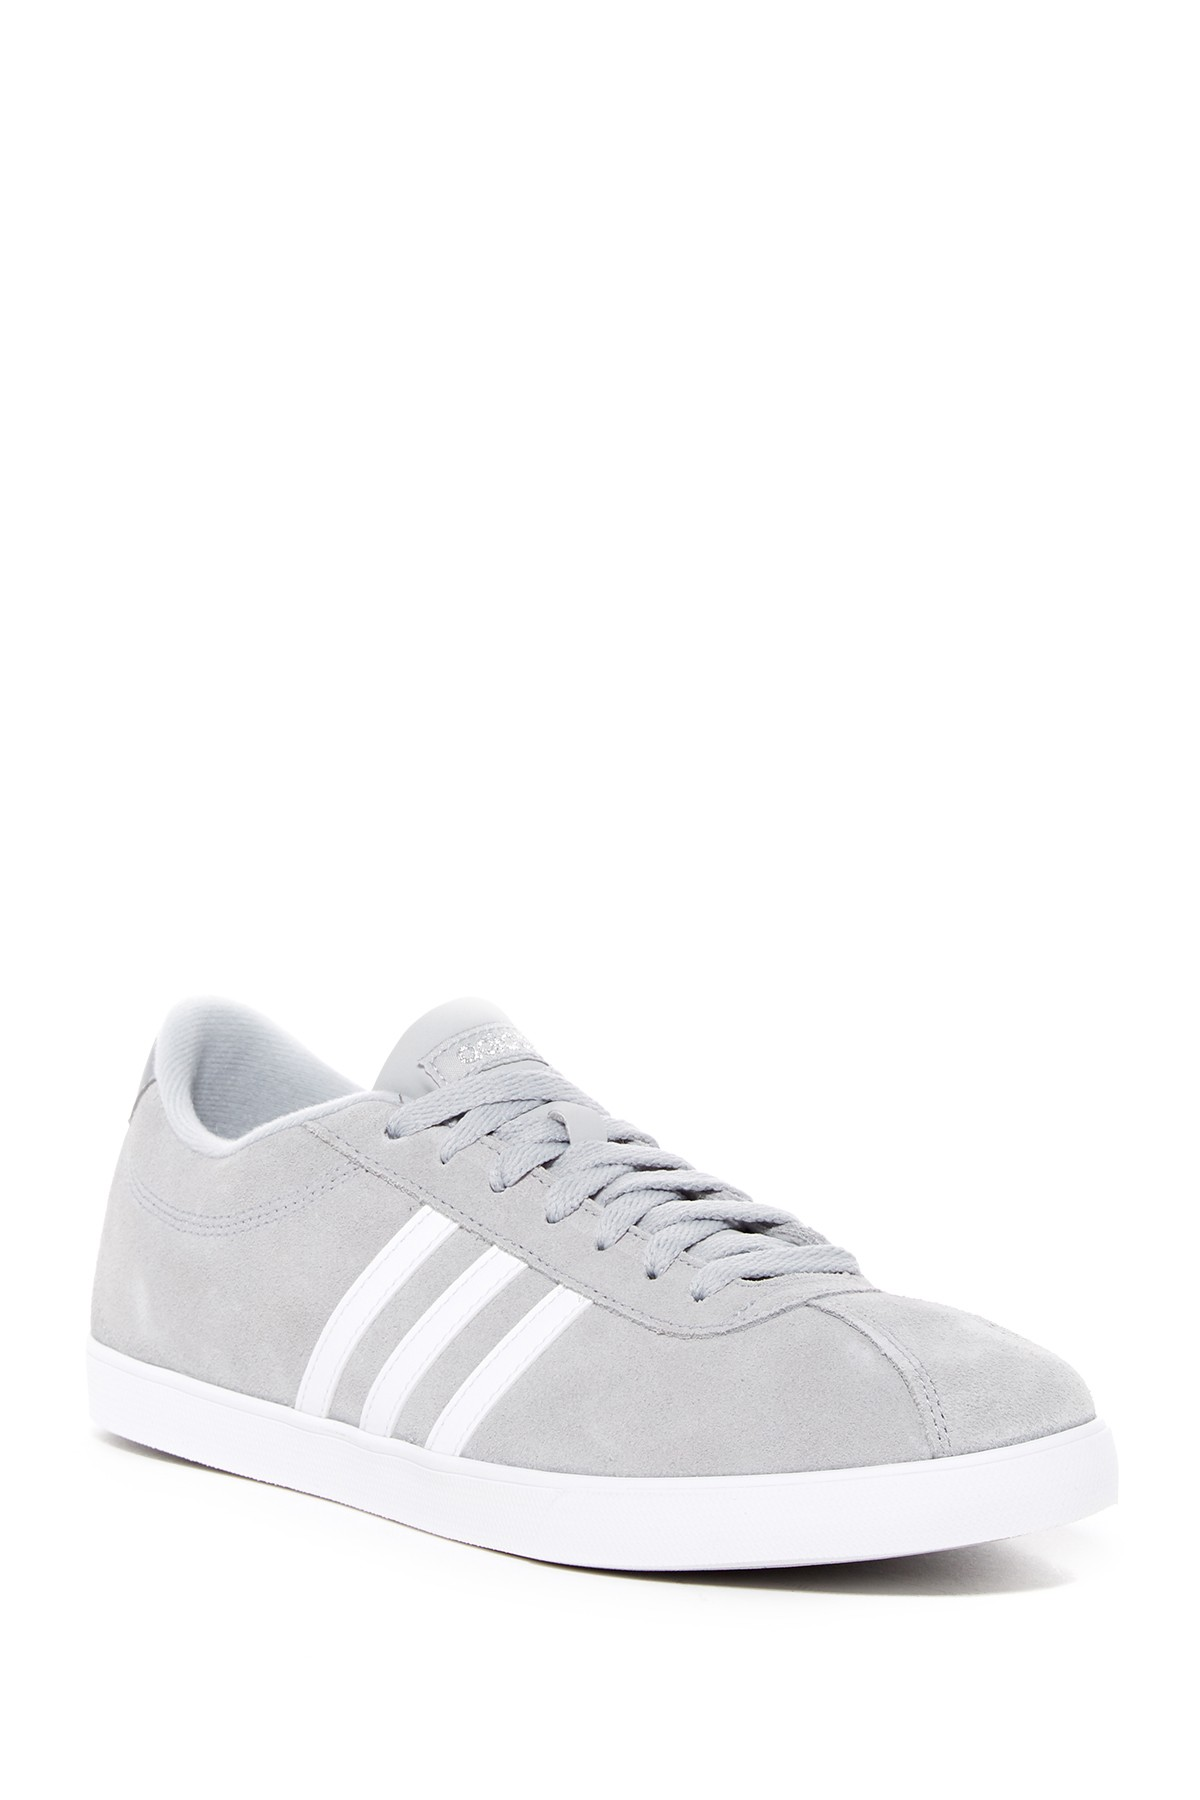 These  classic Adidas'  are always in style. On sale for $42.97